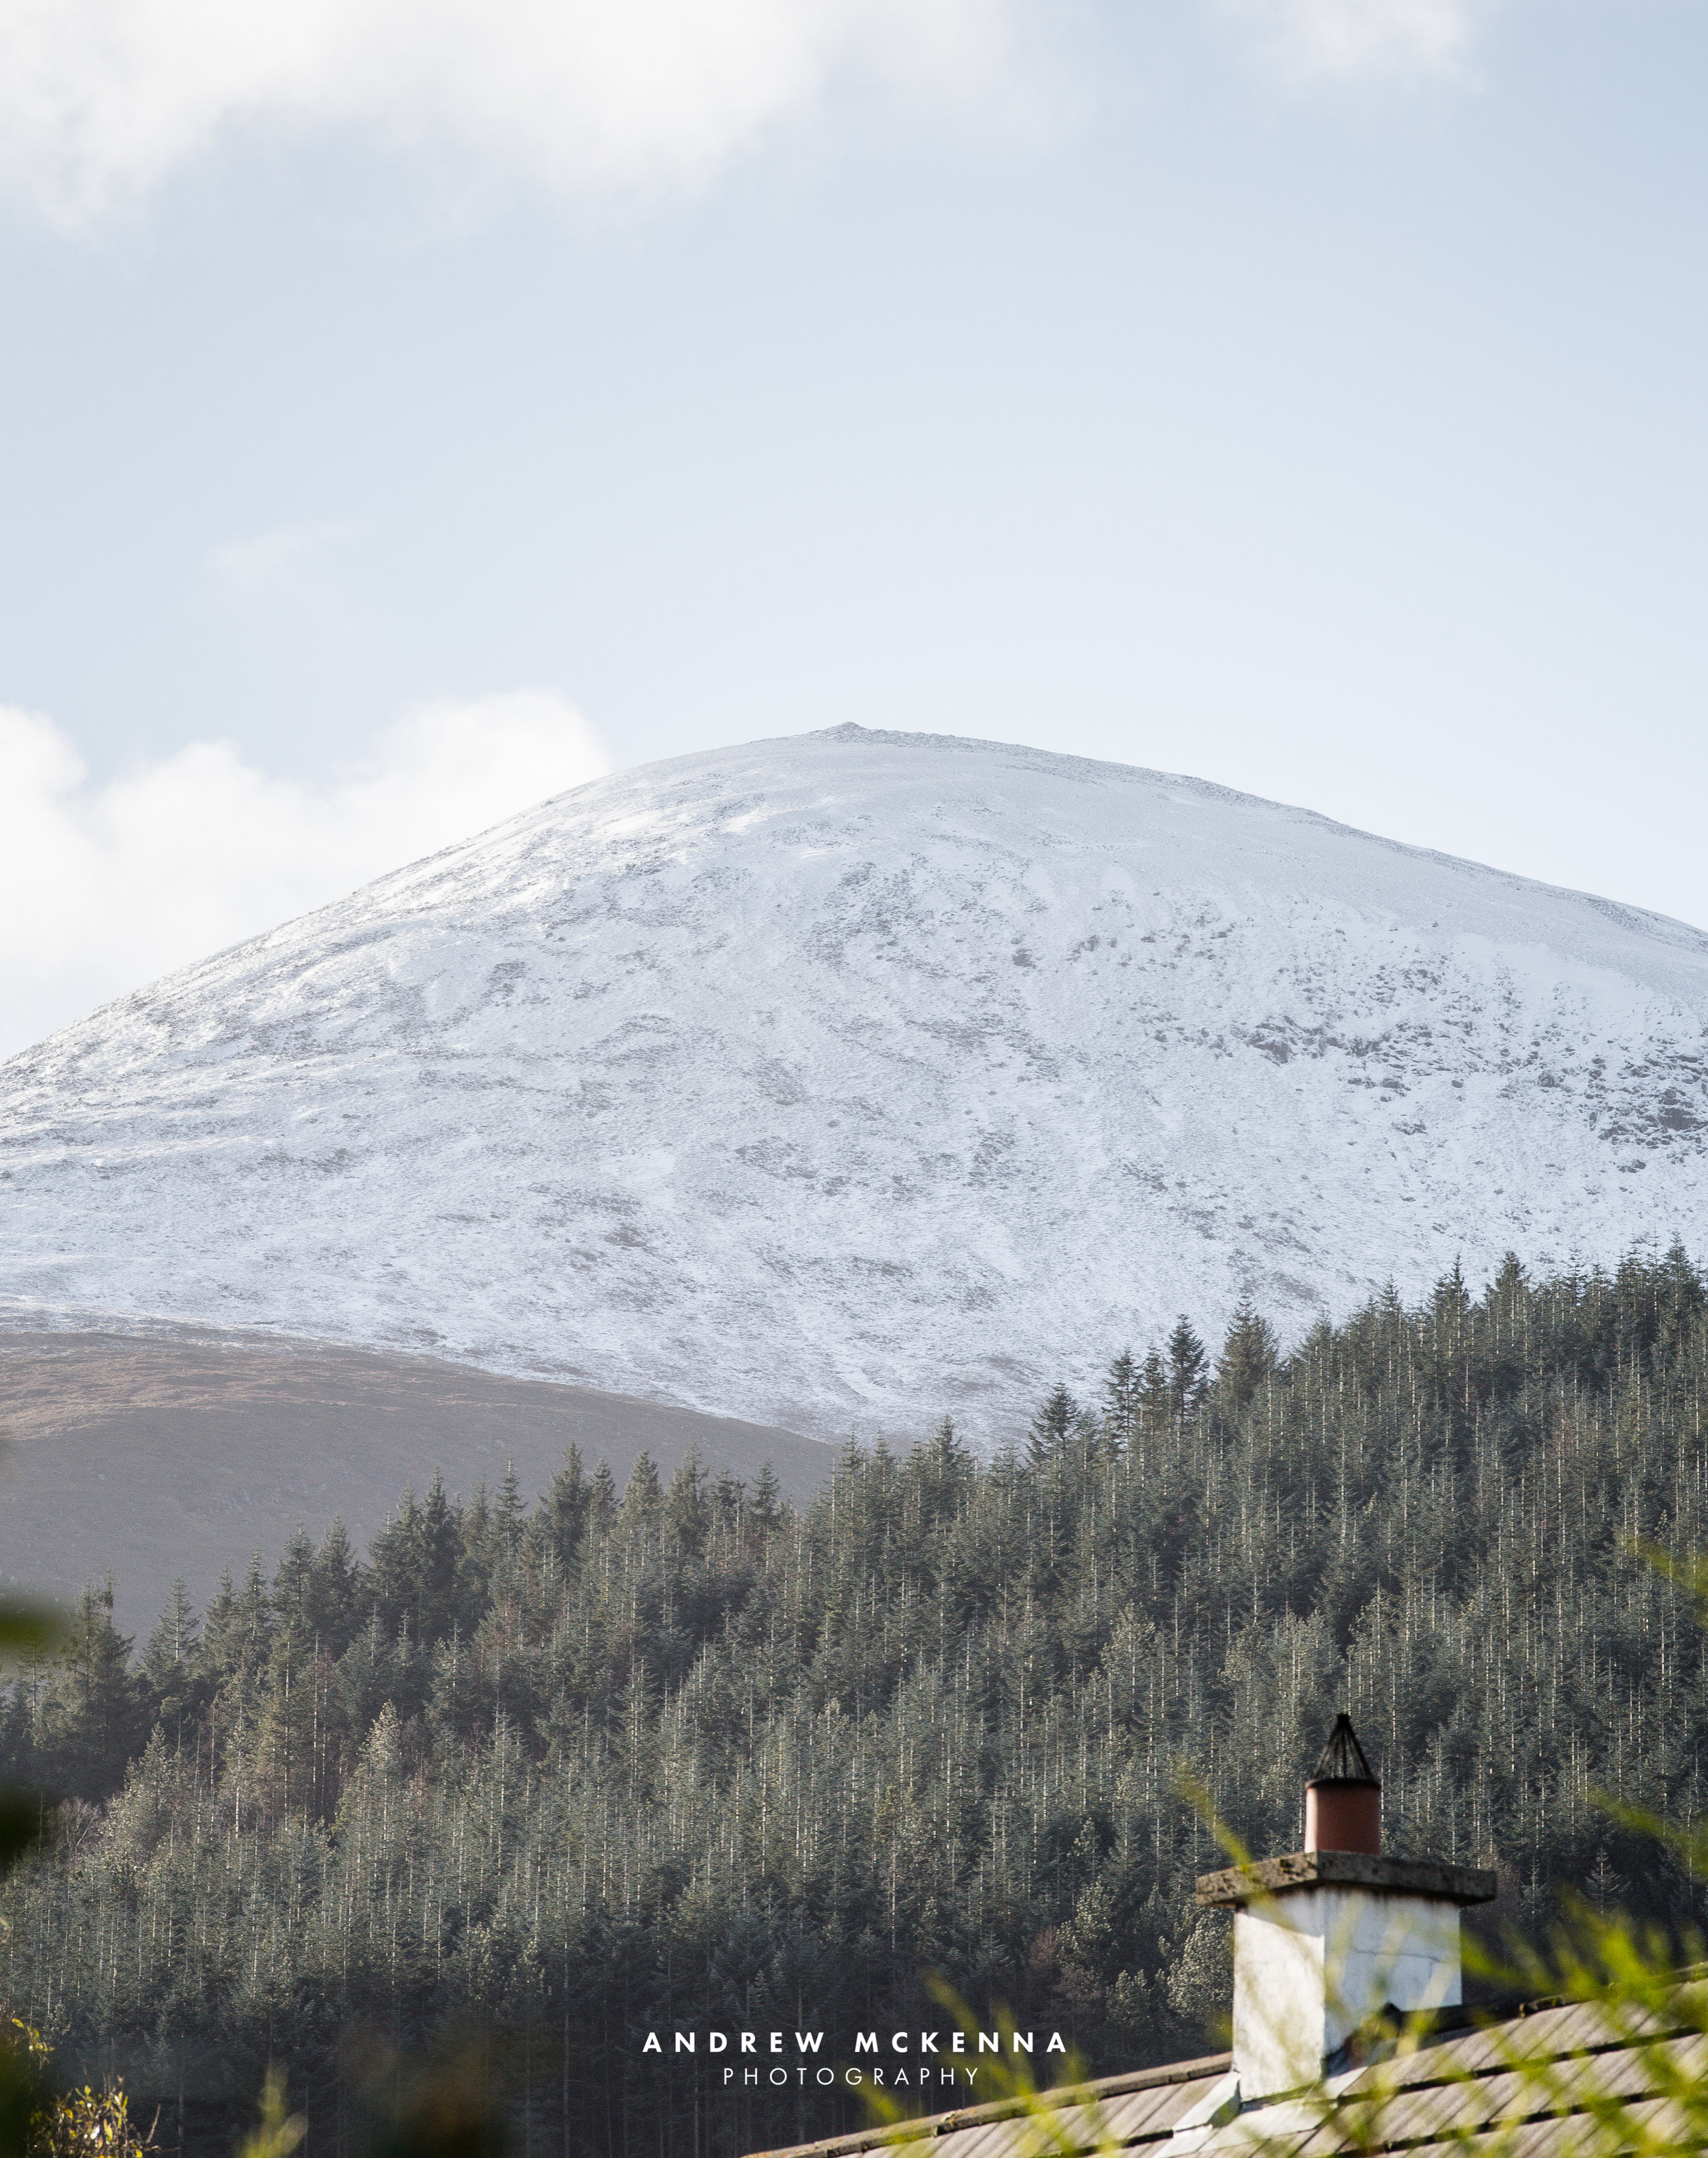 Snowy Slieve Donard mountain from my garden in Newcastle.